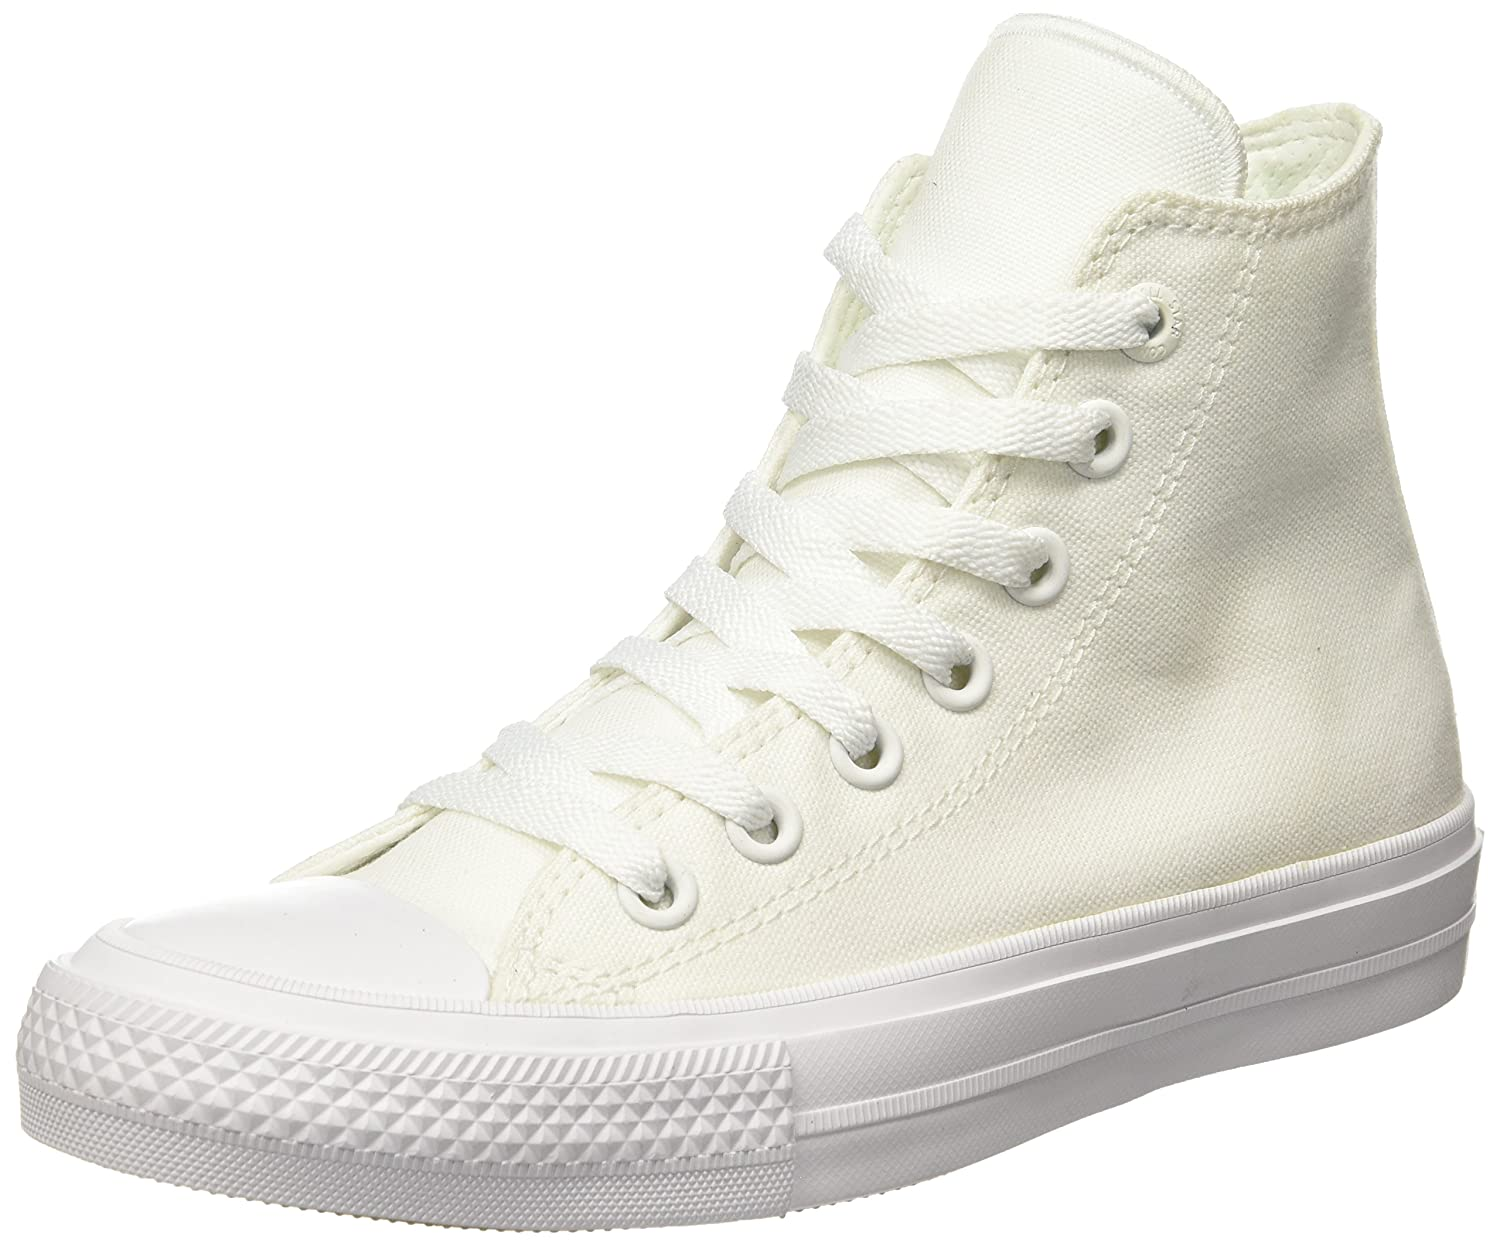 Converse Chuck Taylor All Star II High B010S5BRN0 8.5 D(M) US|White